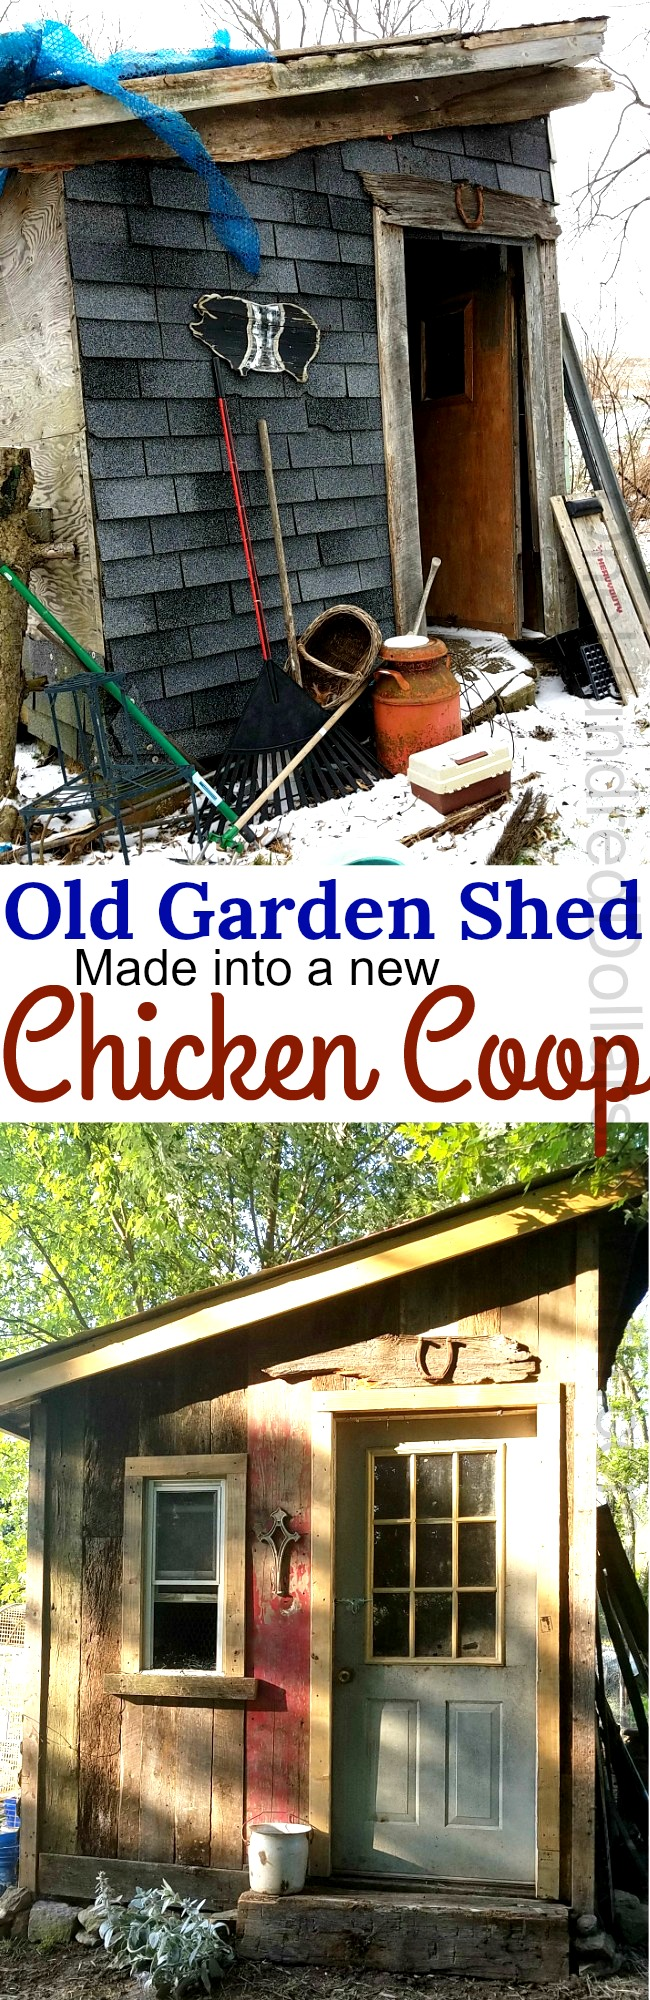 Peggy Shares How Her Husband Turned an Old Garden Shed into a New Chicken Coop